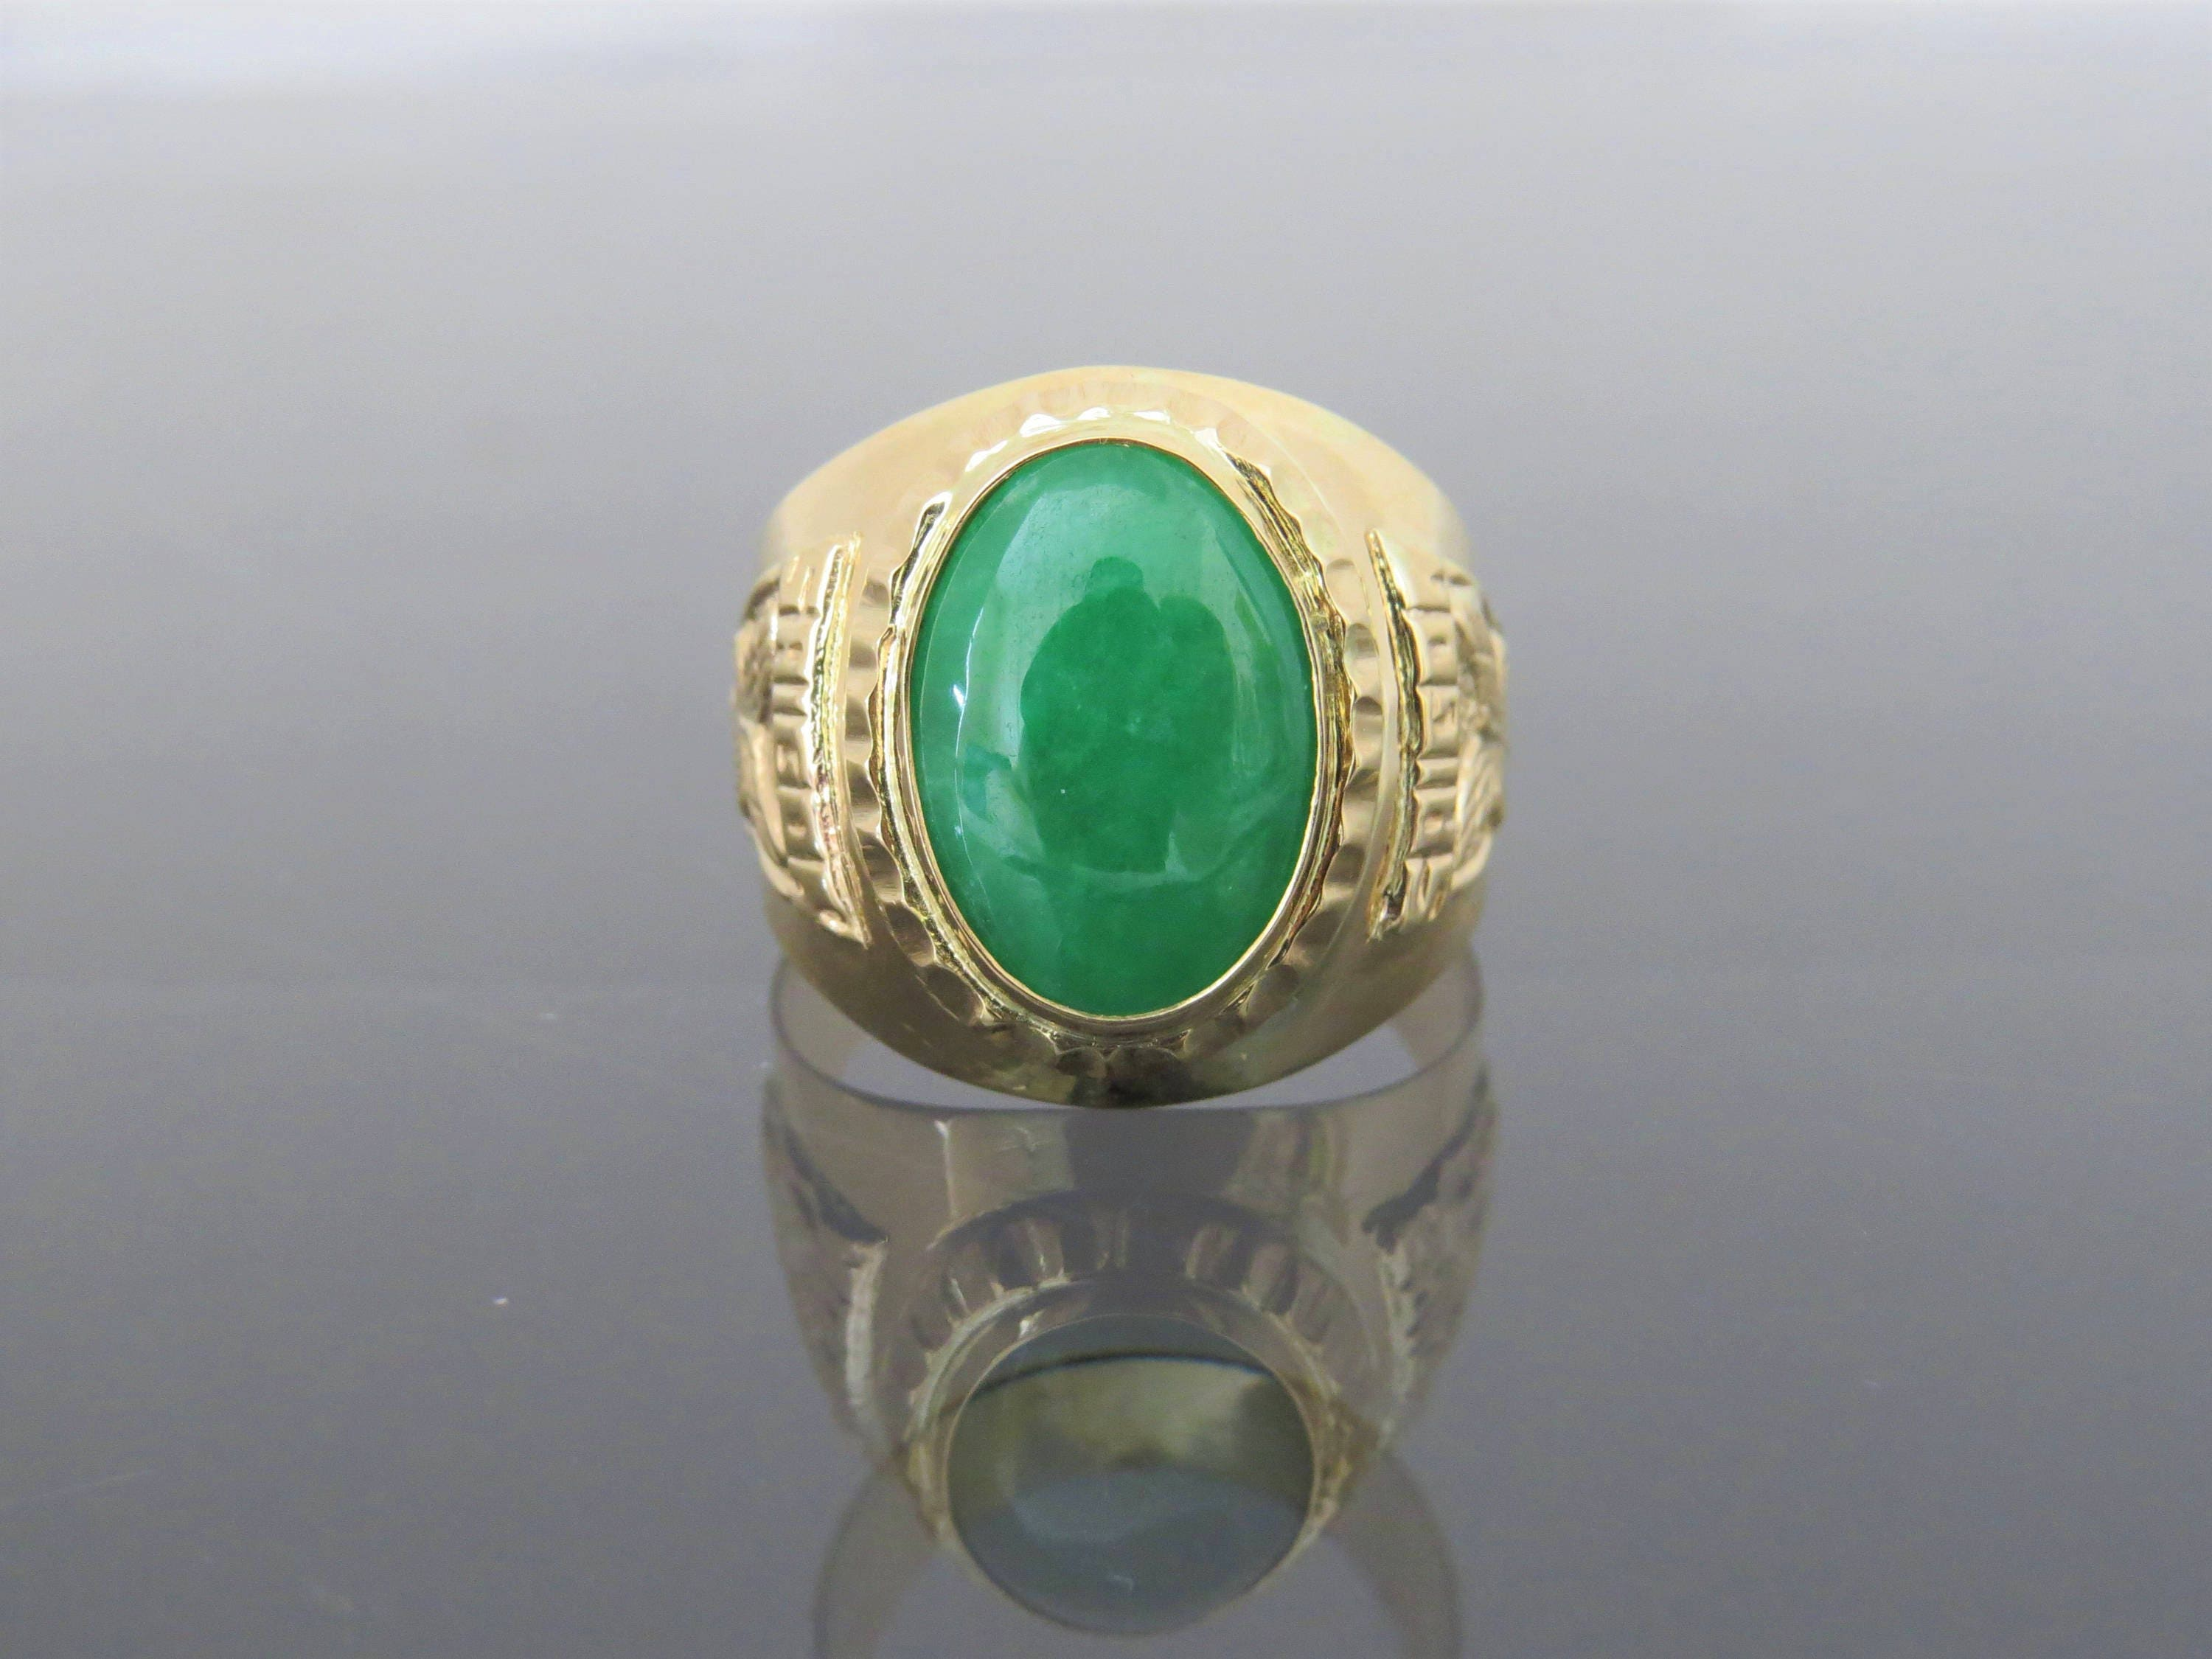 ring gem bracelet diamond custom boutique pa made york yellow gold jewelry emerald mens